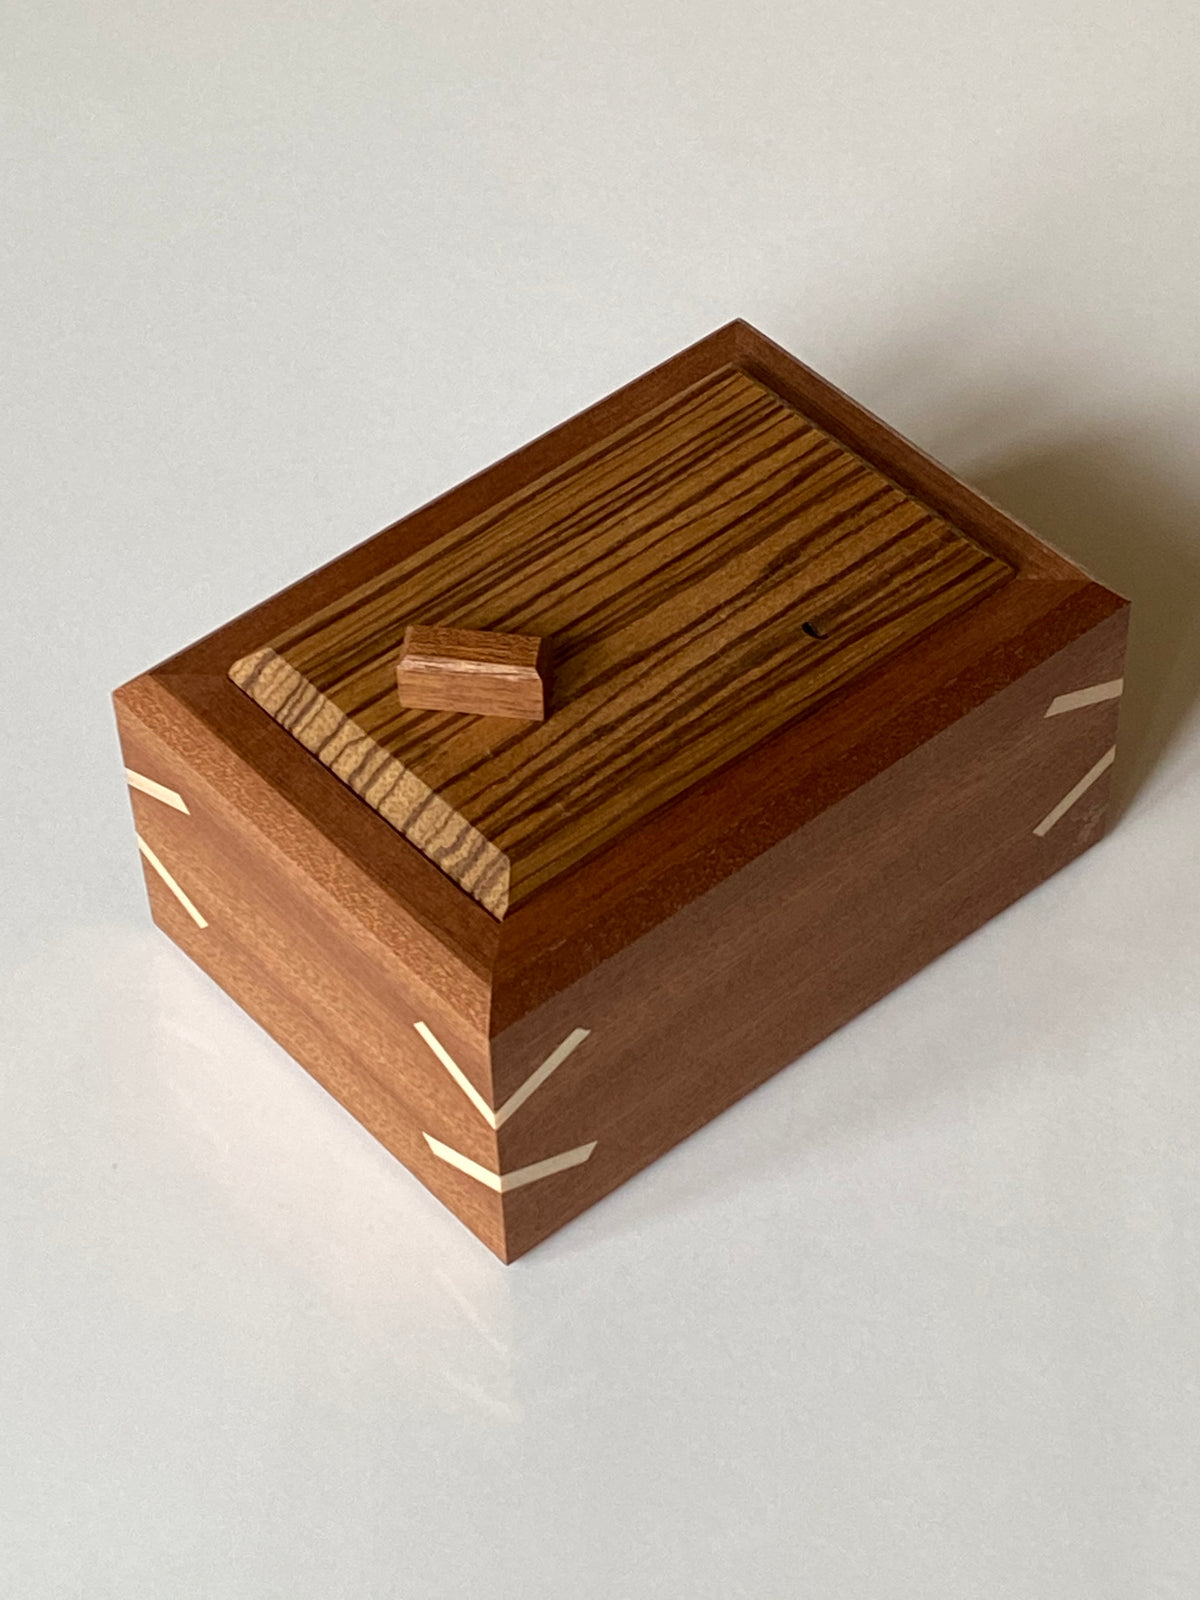 The Blinded II Puzzle Box by Dee Dixon